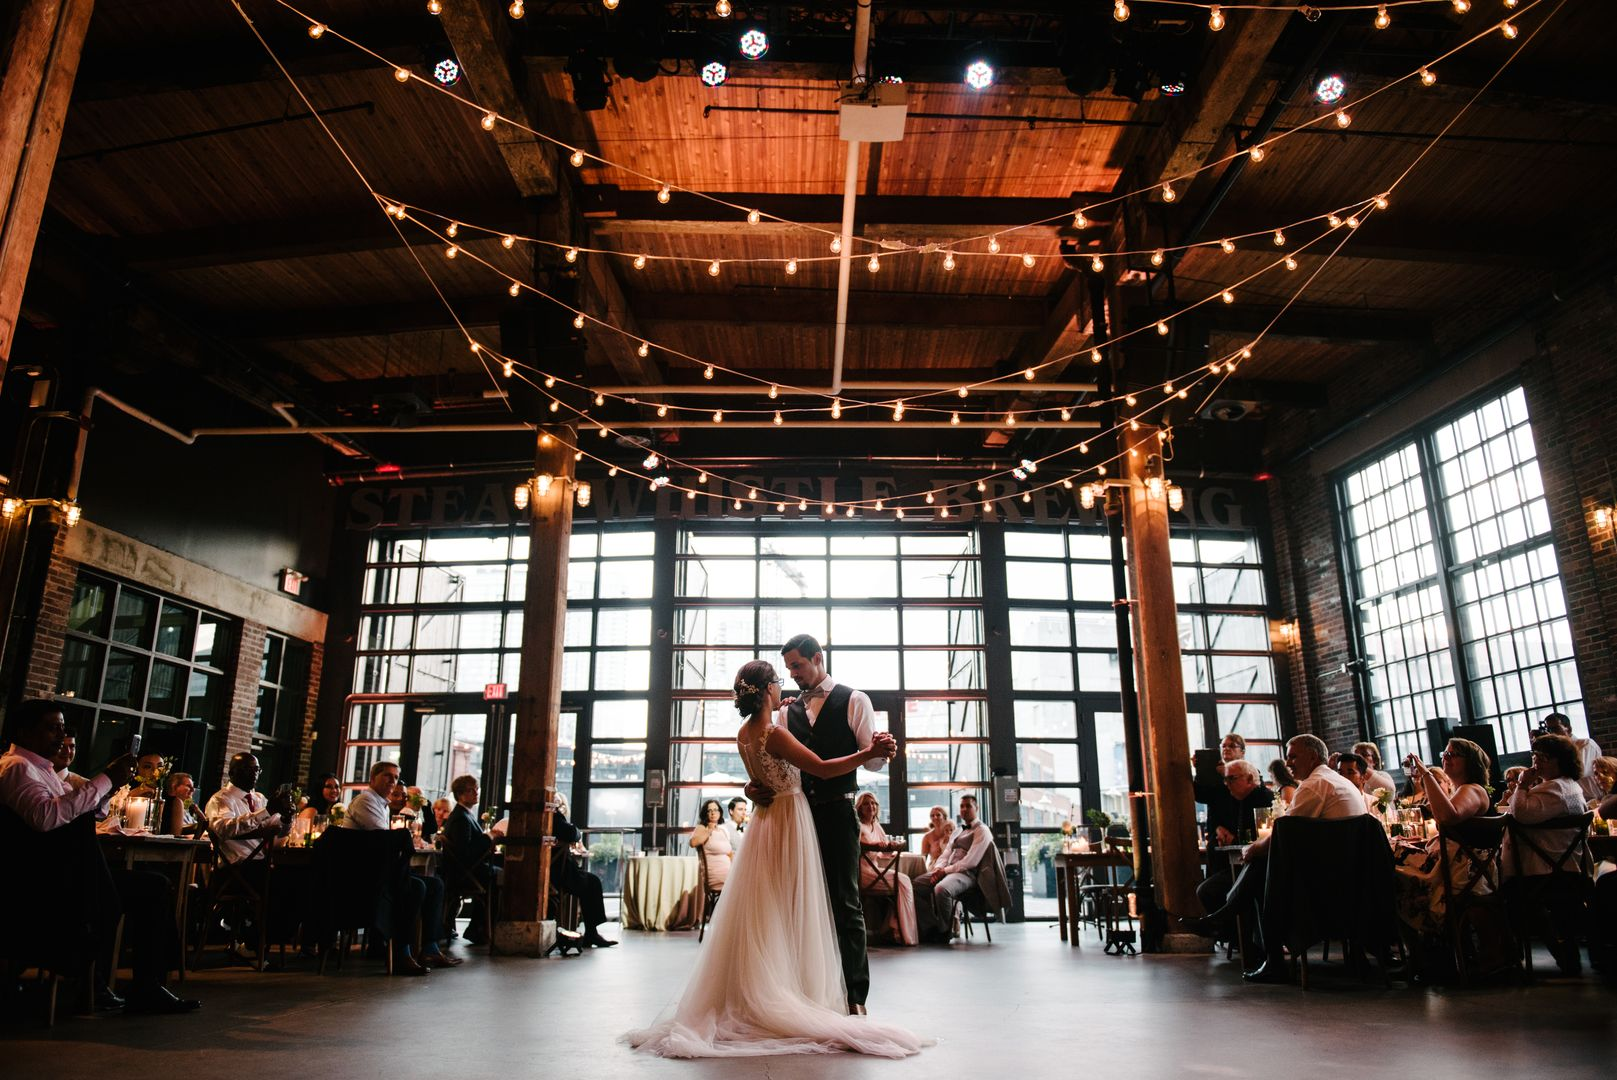 Our Sous-Chef's Toronto Wedding at Steam Whistle Brewing